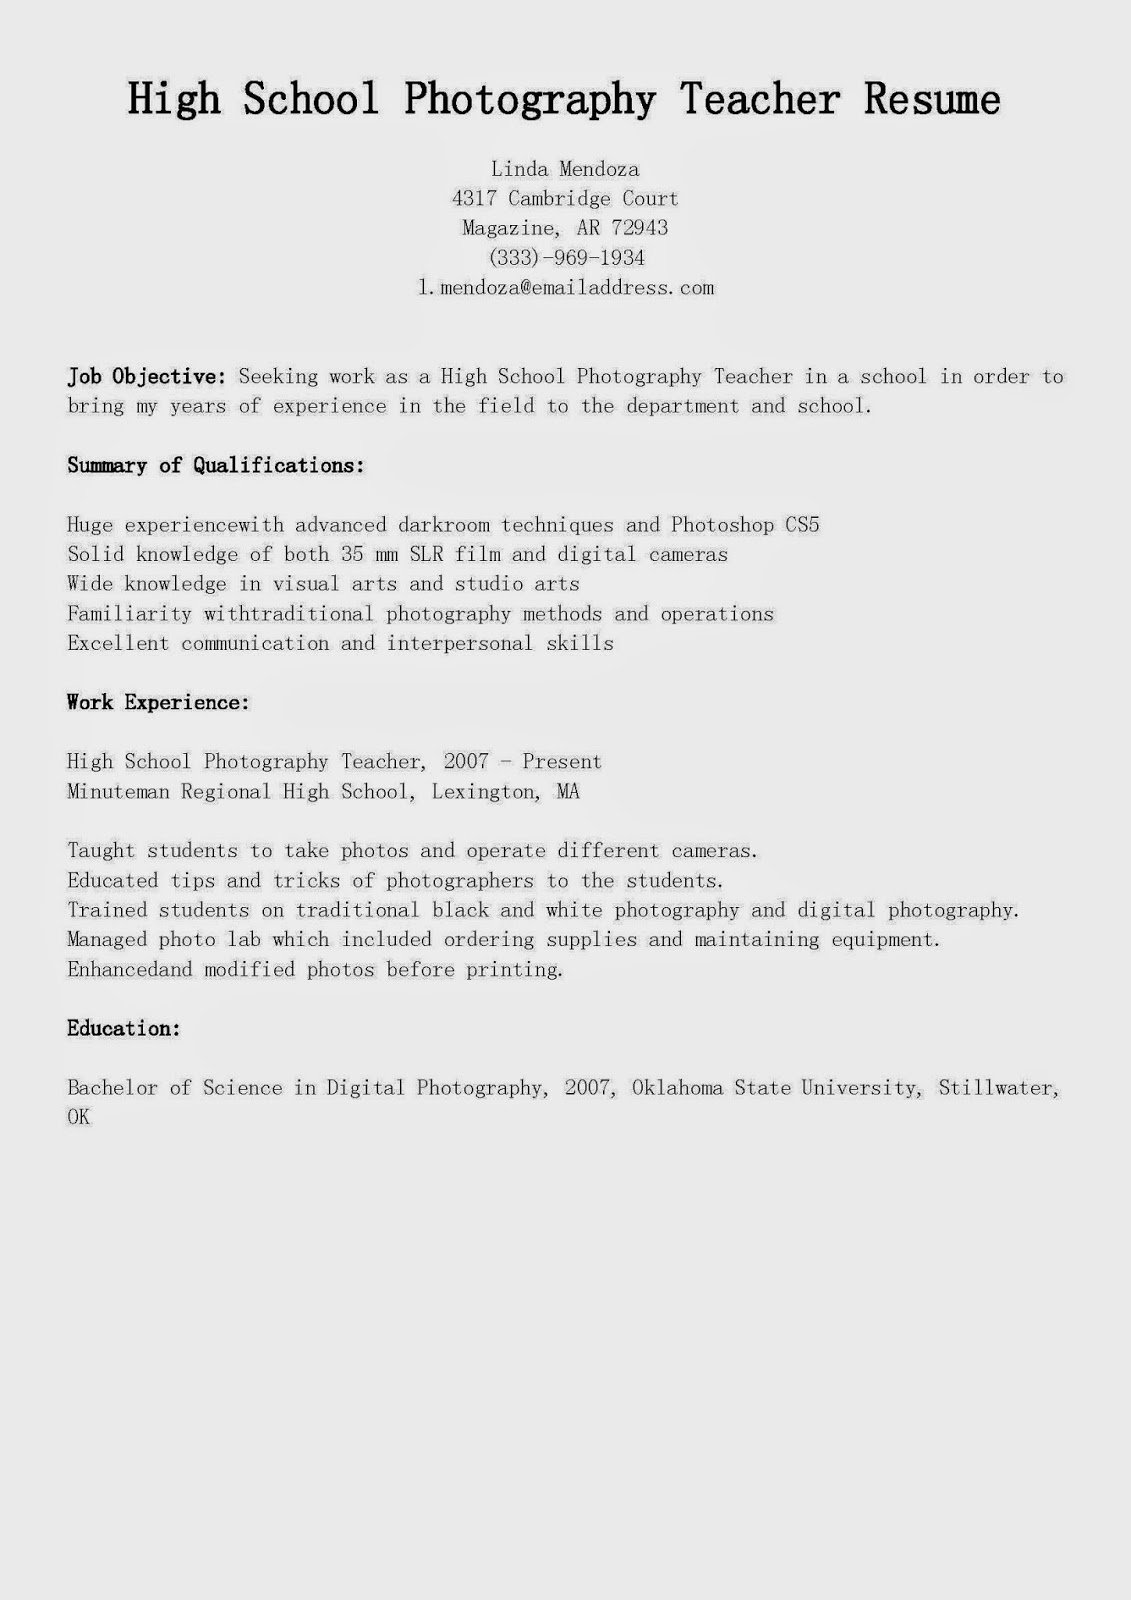 Resume samples high school photography teacher resume sample for Sample resume of a teacher in high school